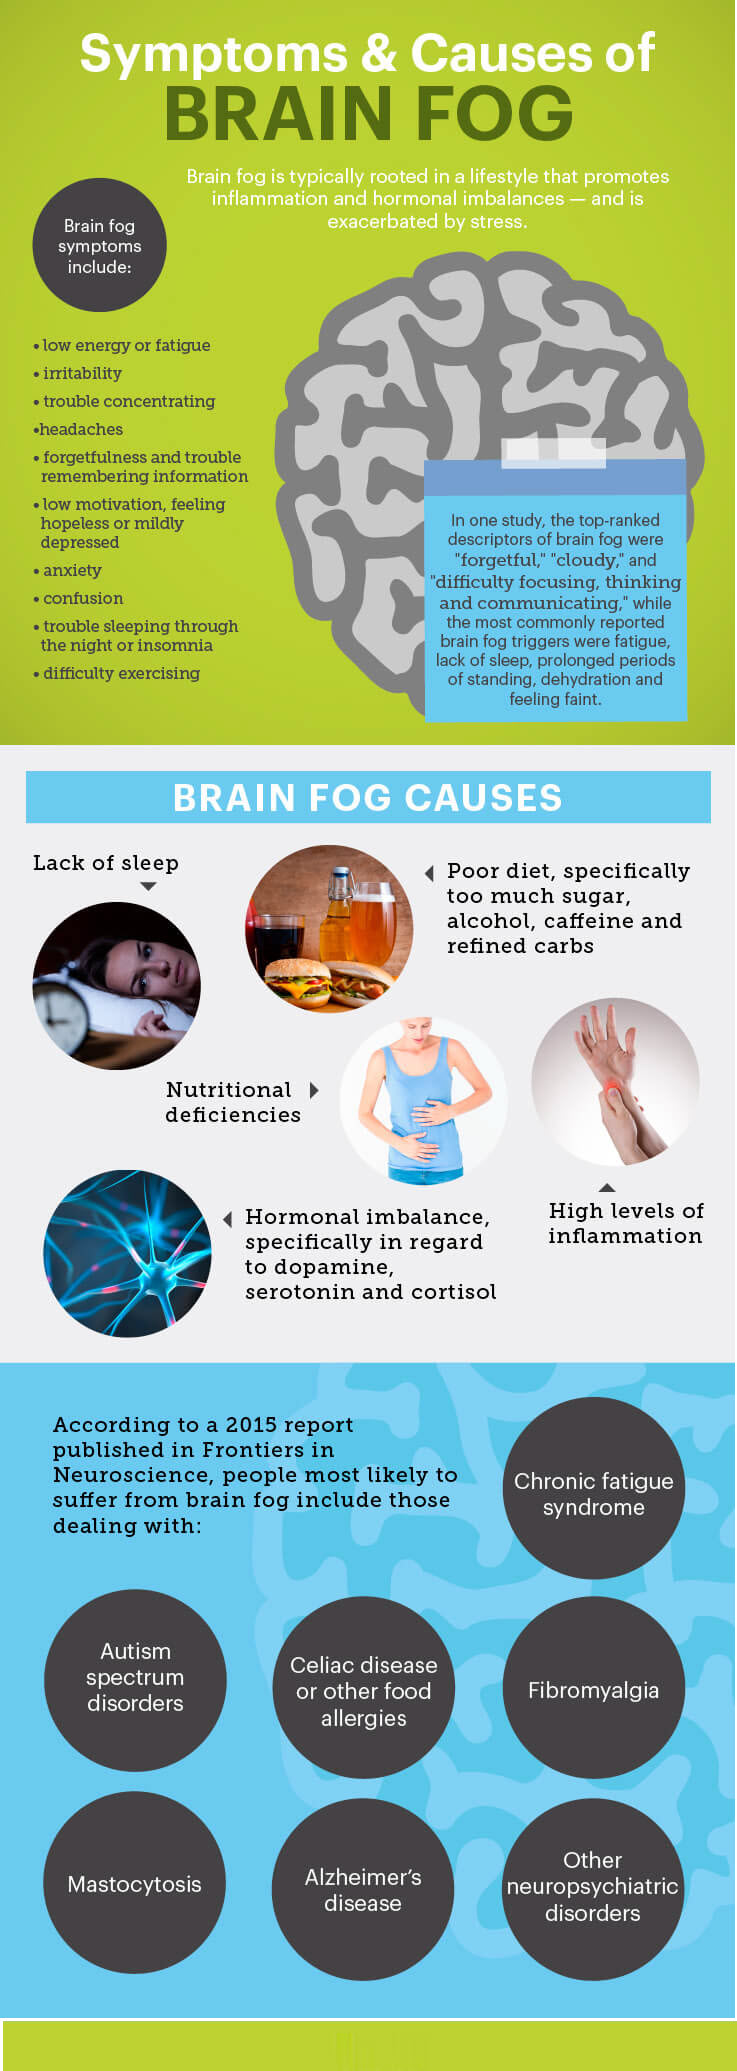 Brain fog symptoms & causes - MKexpress.net